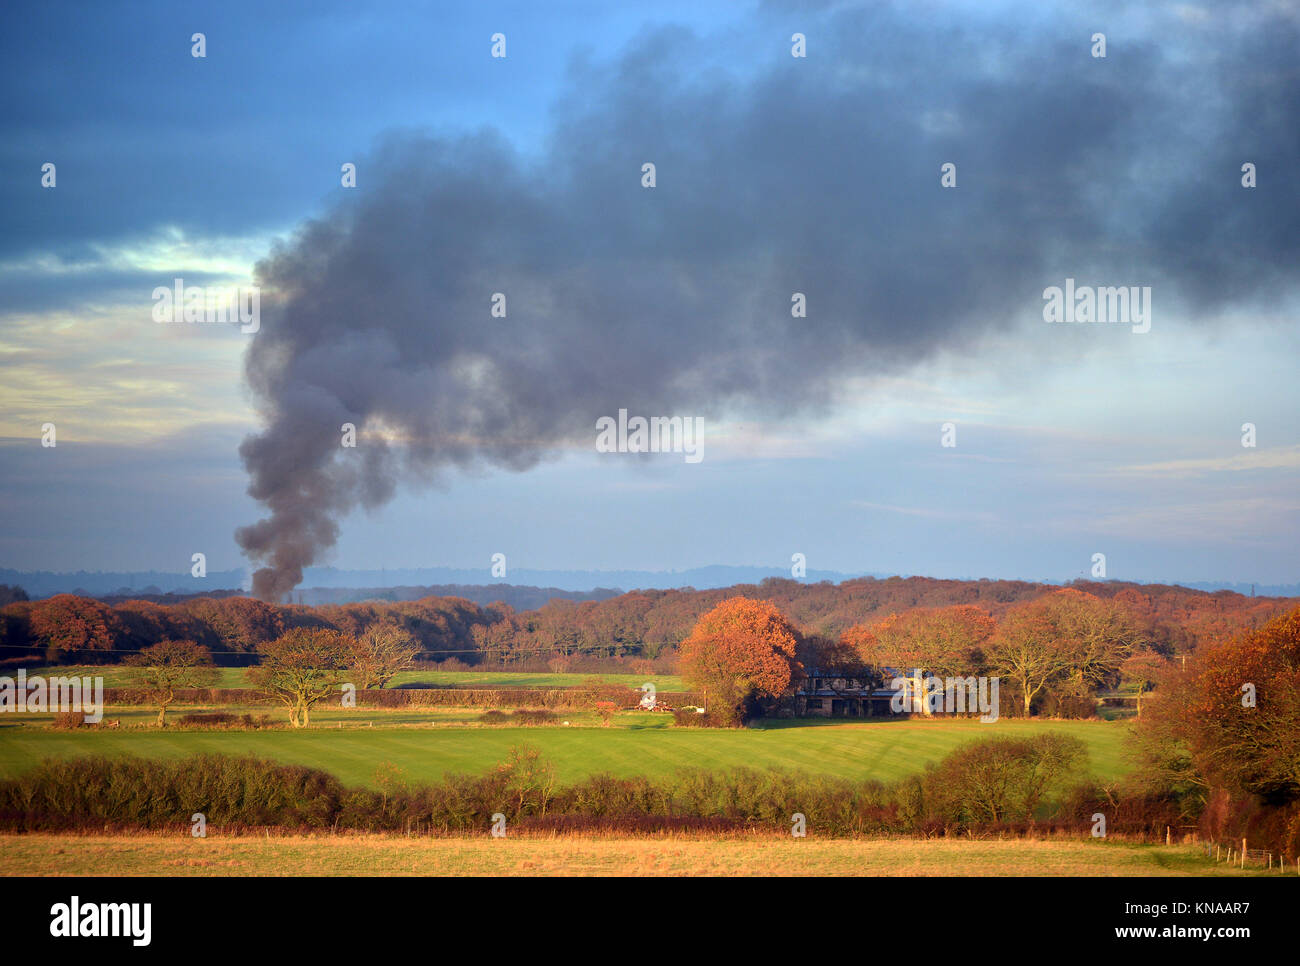 illegal waste burning in the countryside (illustrative) - Stock Image